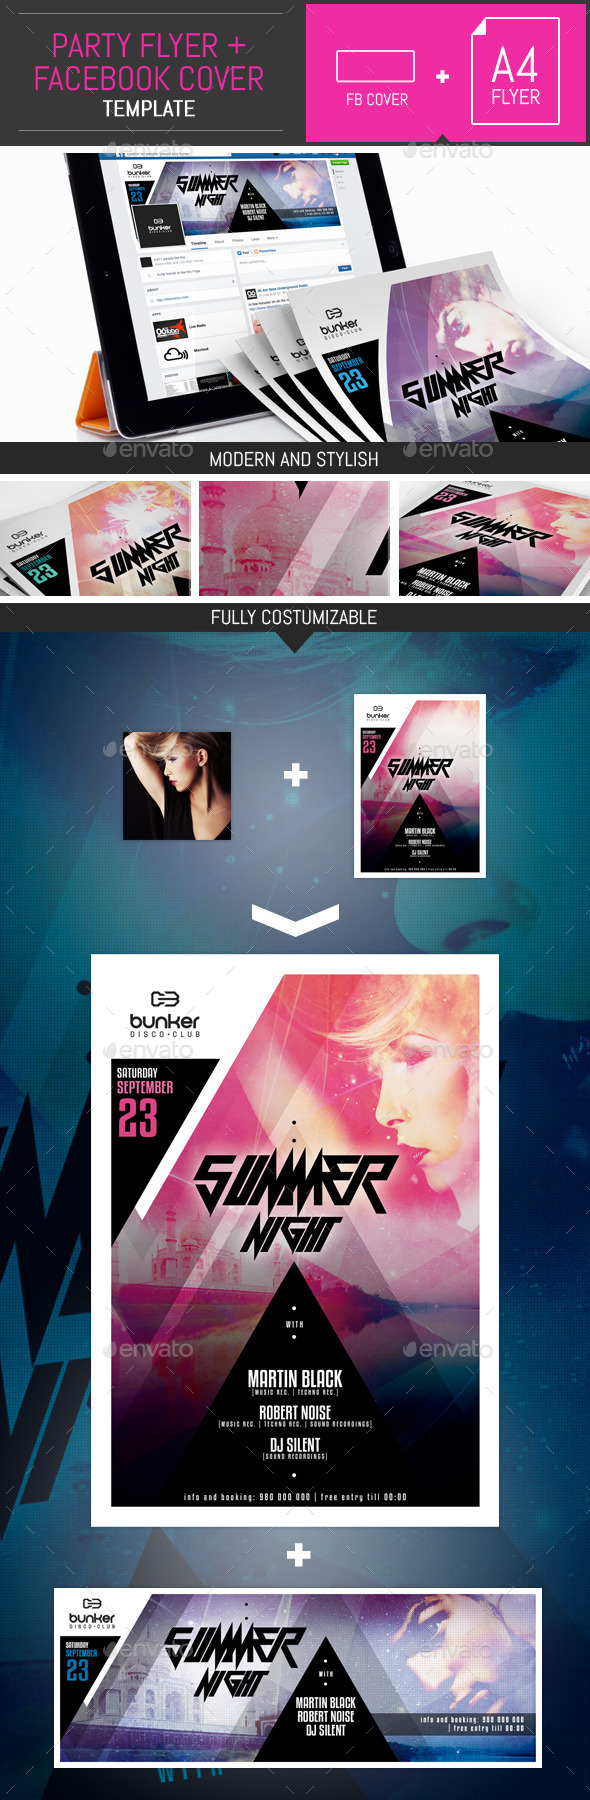 Dj Party Flyer/Poster Templates 002 - Clubs & Parties Events